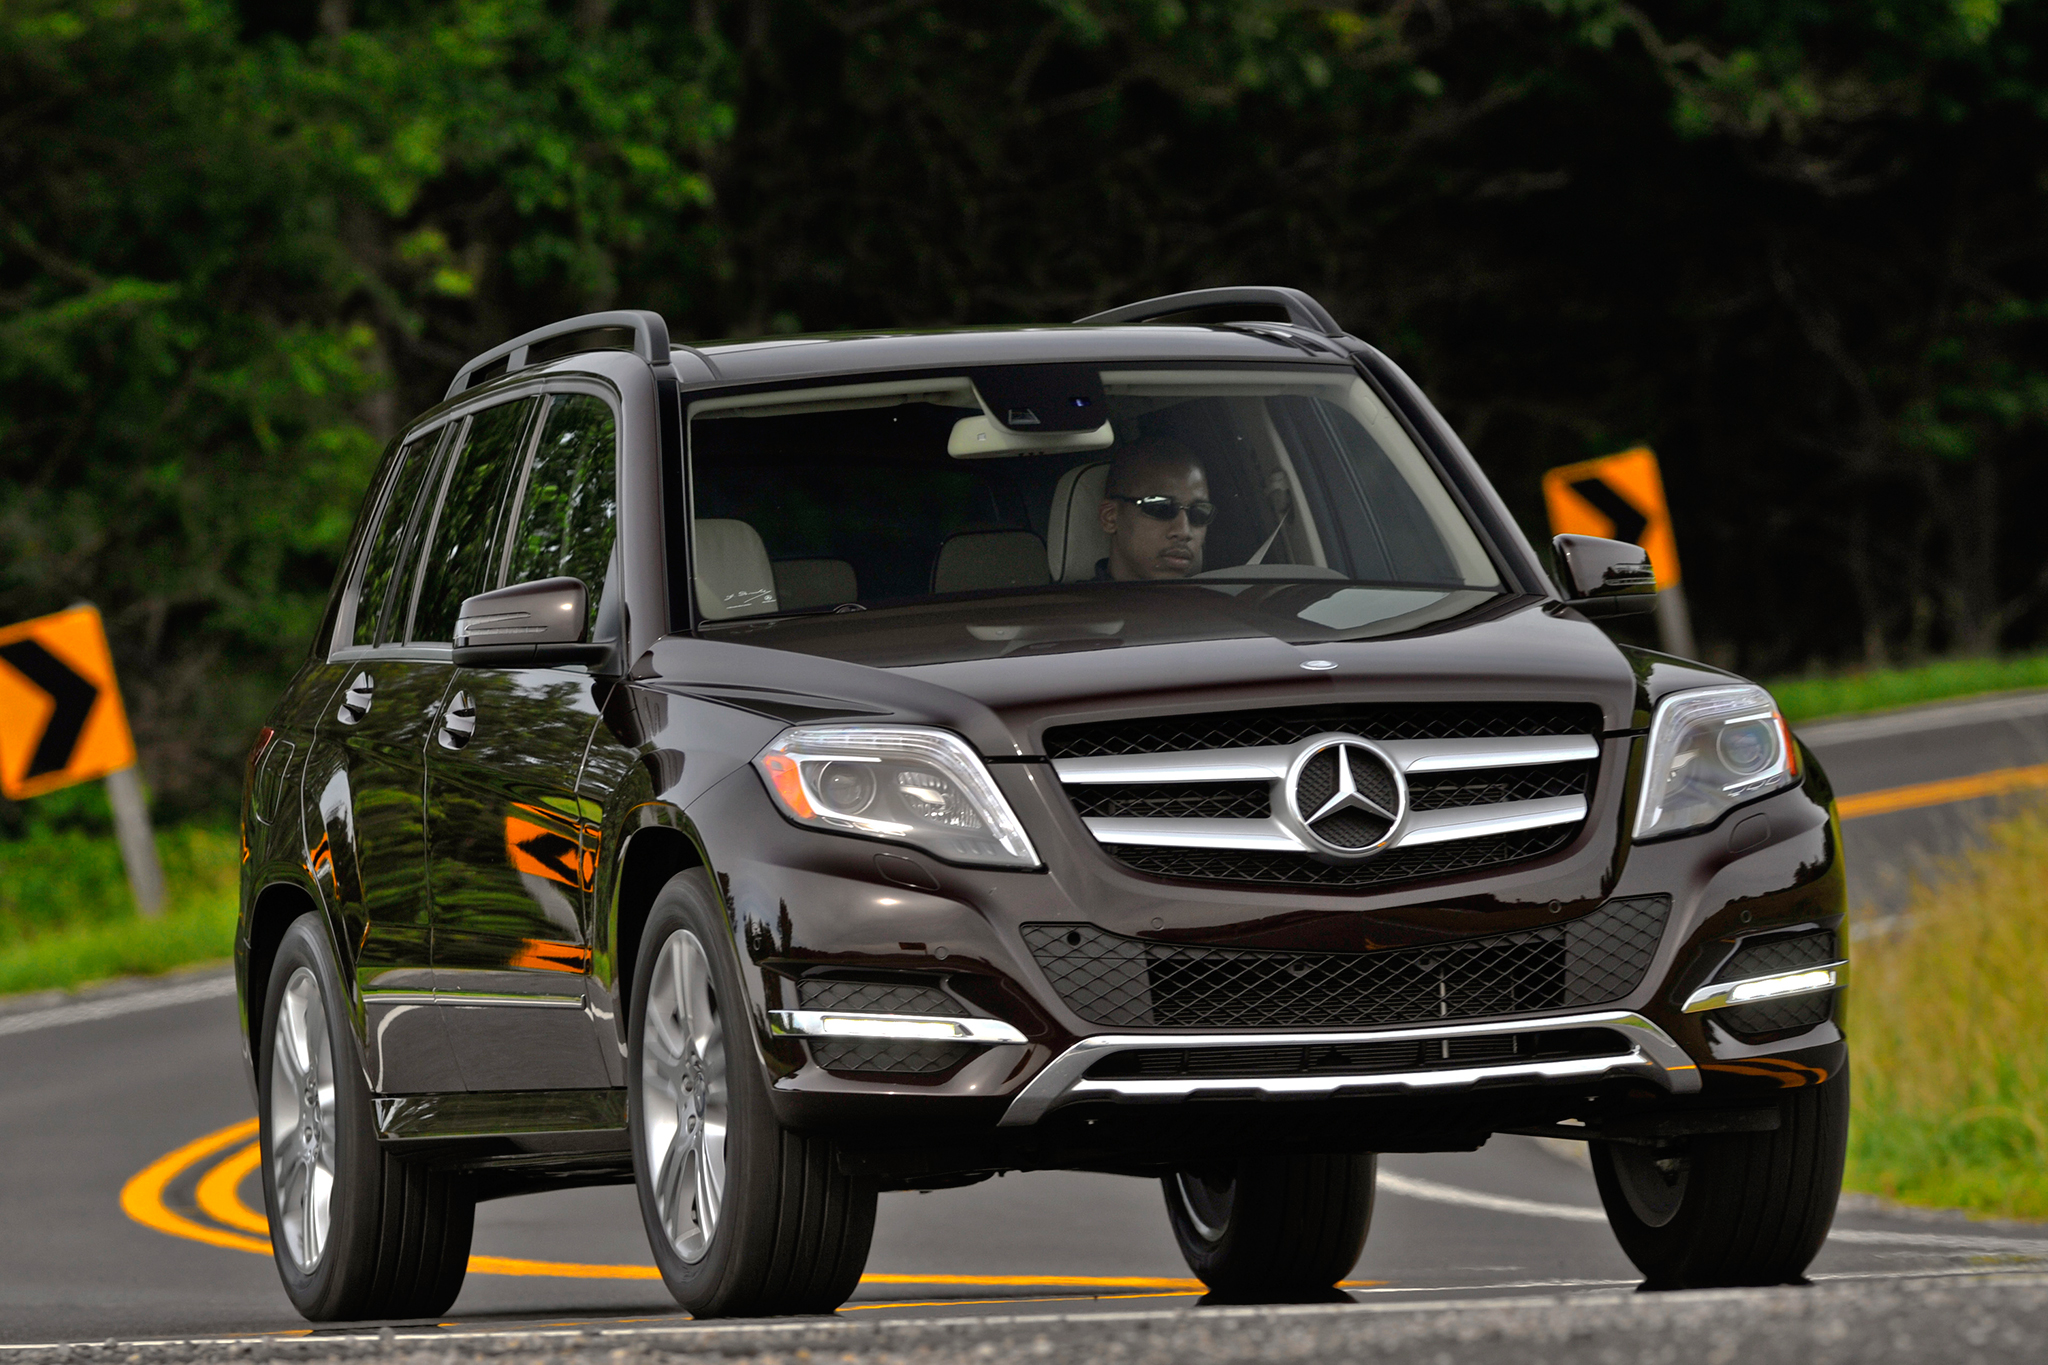 Mb 2015 glk 350 2017 2018 best cars reviews for Mercedes benz glk 350 review